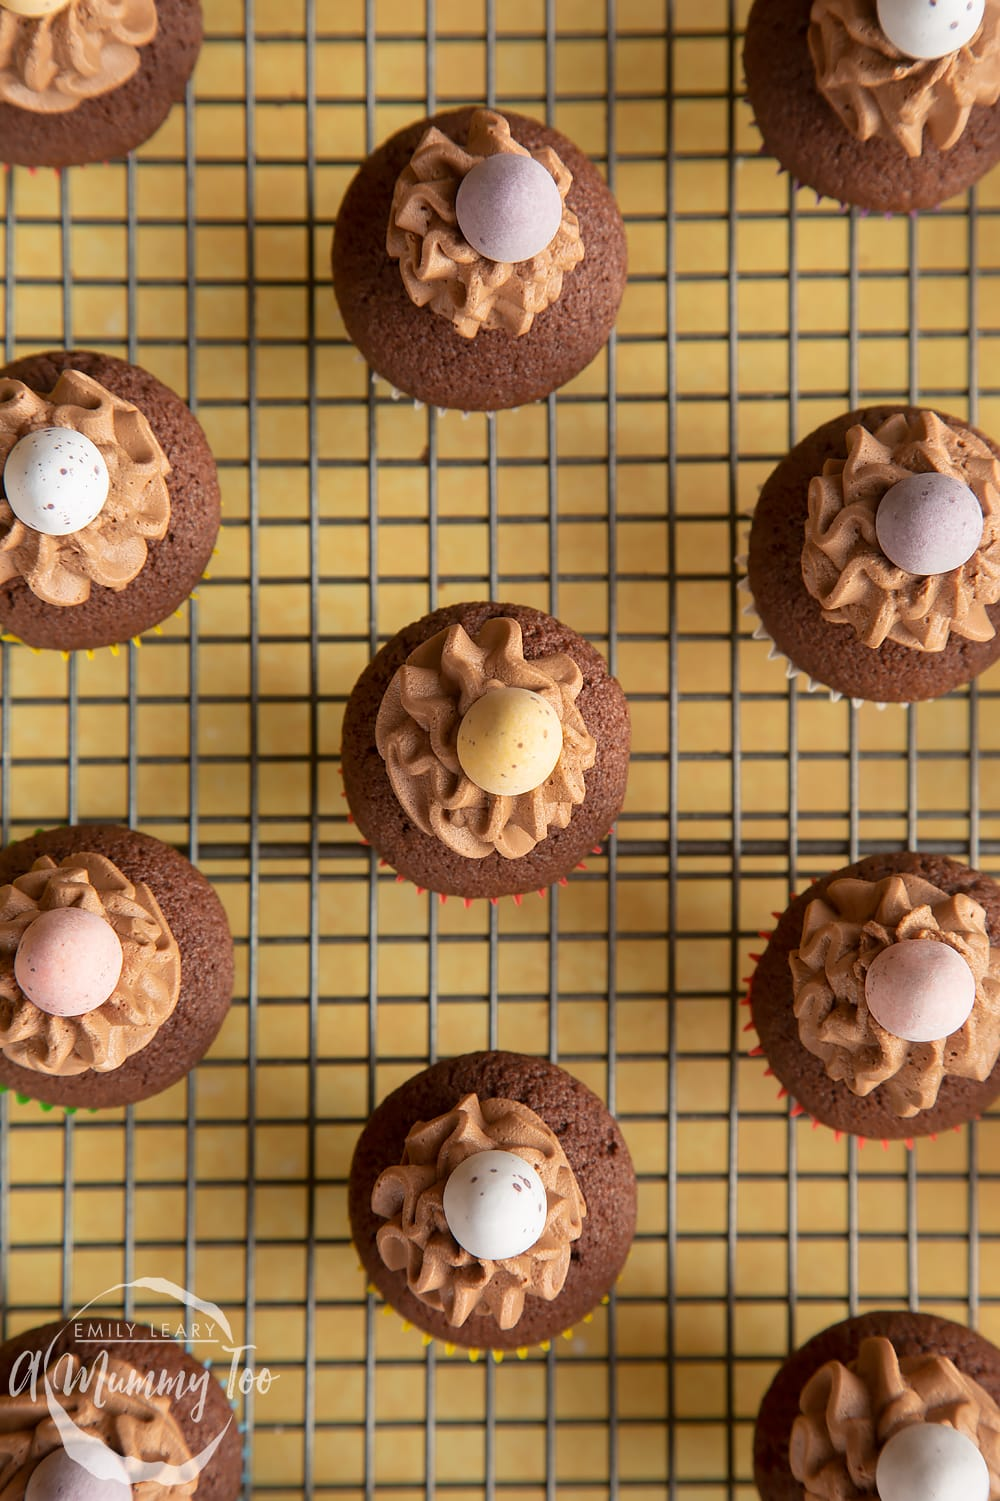 Overhead shot of a Mini chocolate cupcakes for Easter with a mummy too logo in the lower-left corner